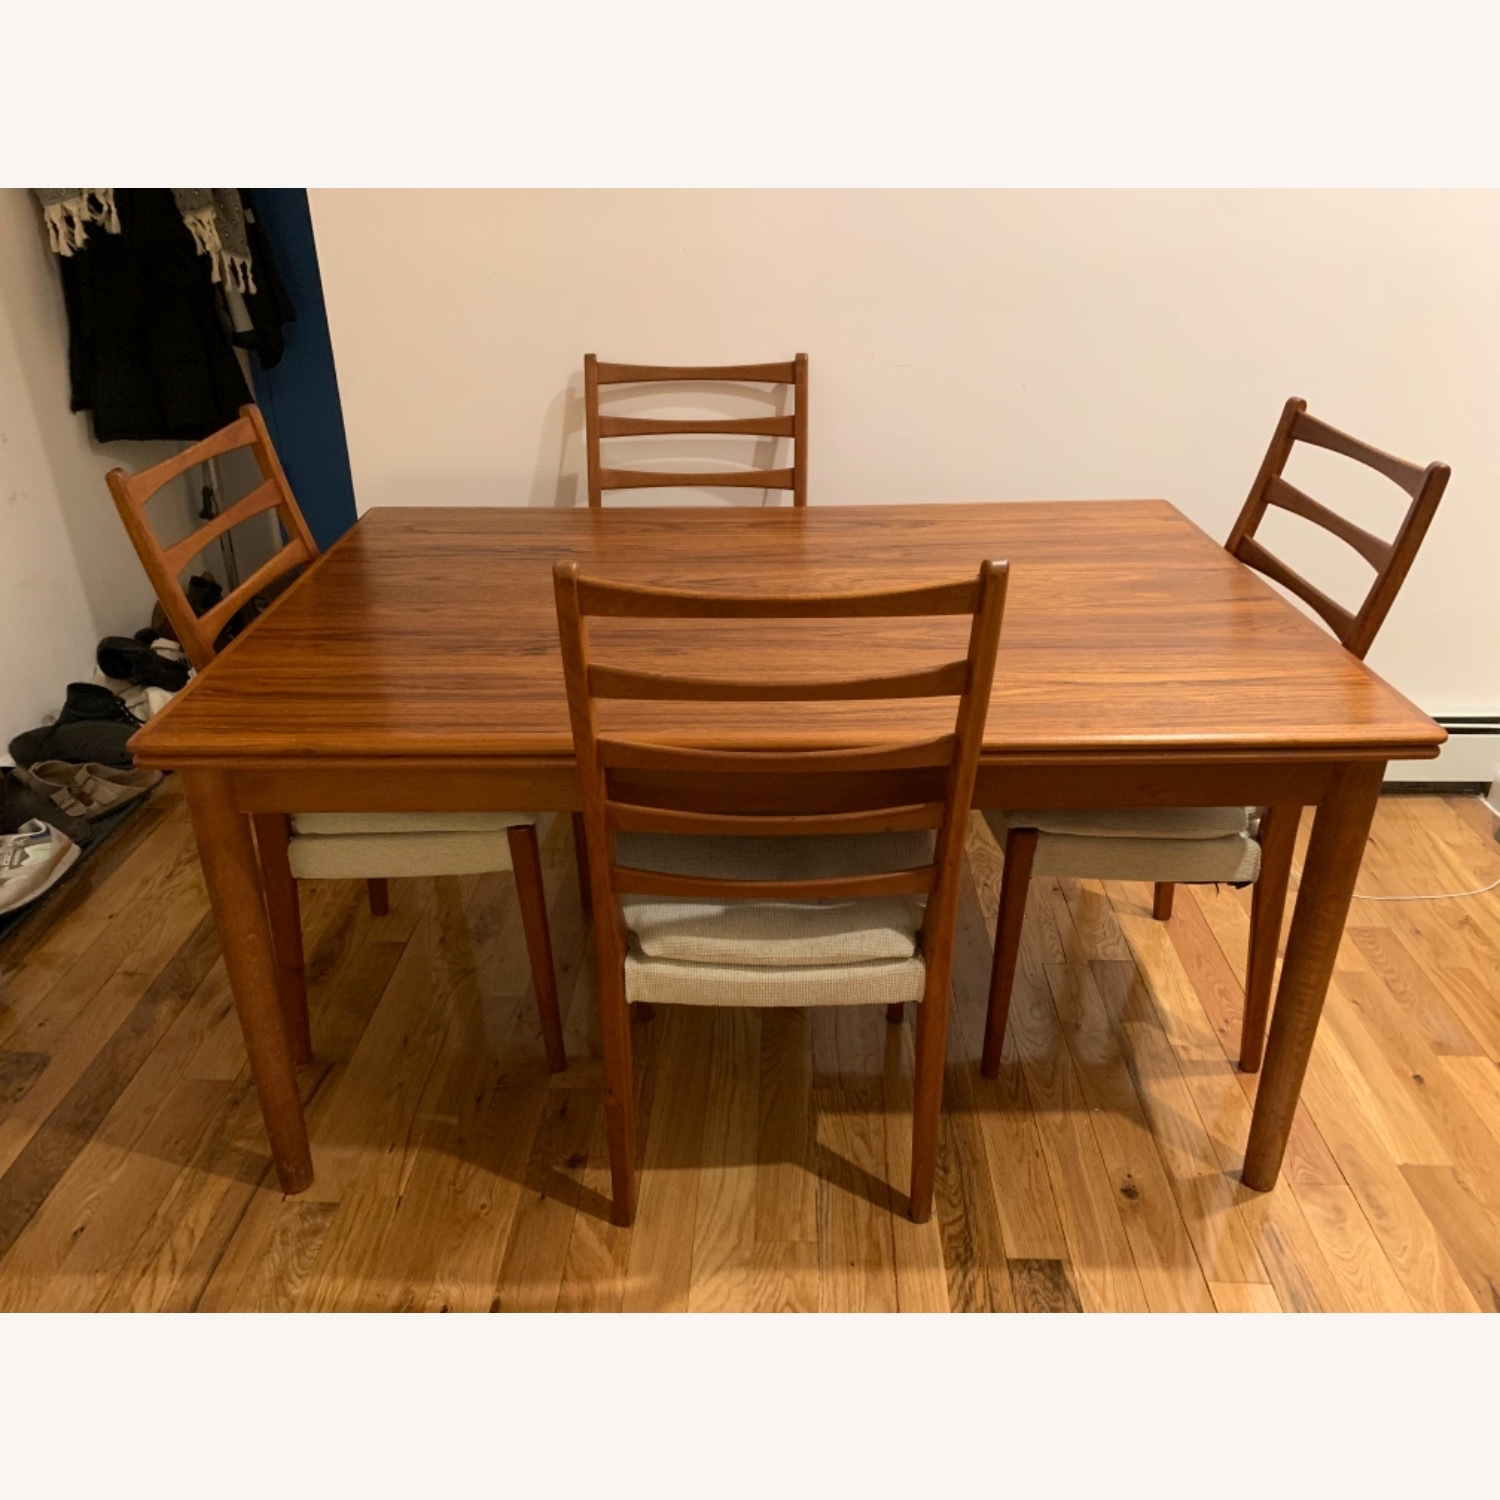 Mid Century Extendable Dining Table w/Four Chairs - image-4